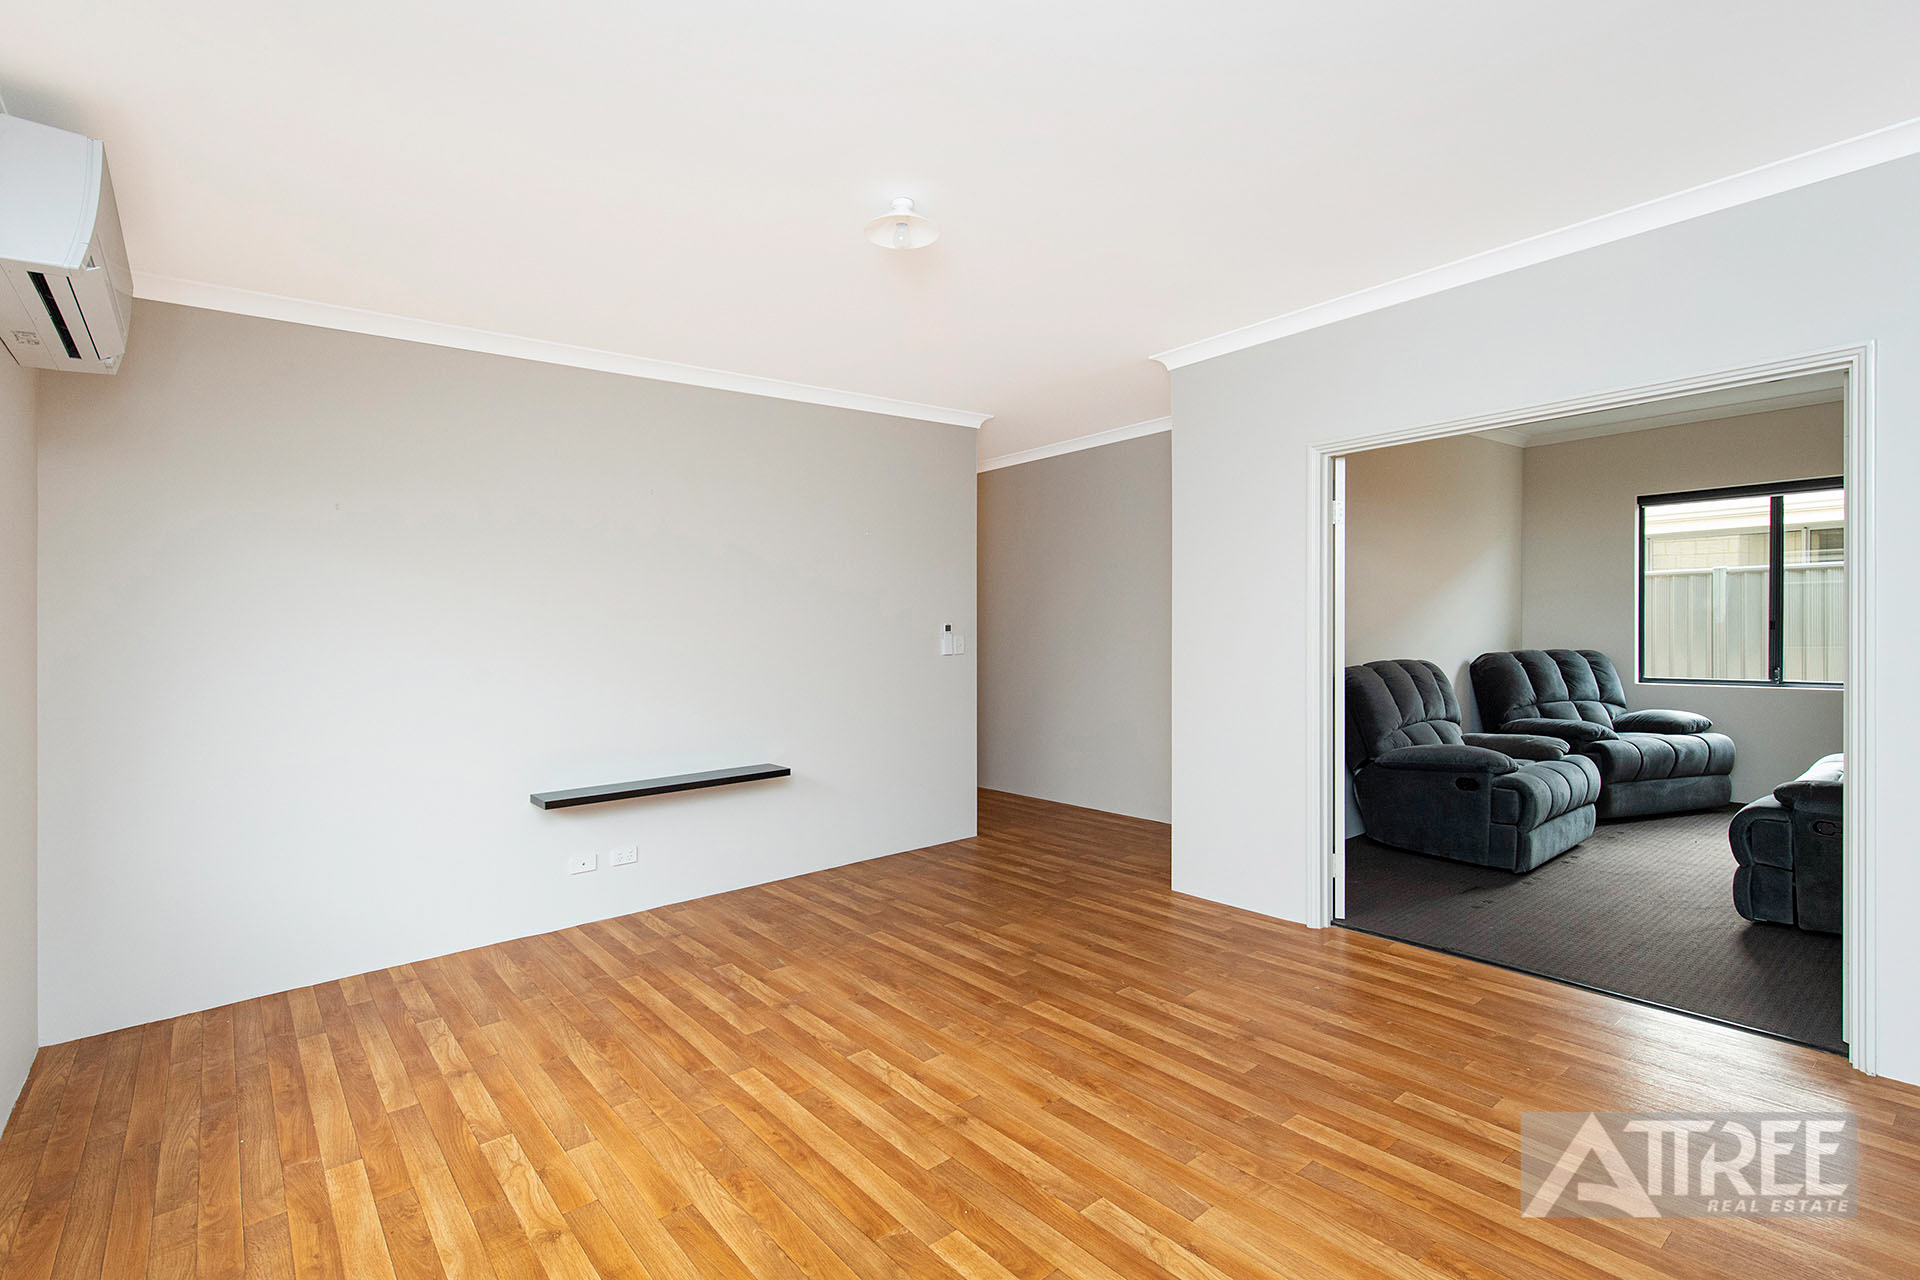 Property for sale in HARRISDALE, 121 Dovedale Street : Attree Real Estate